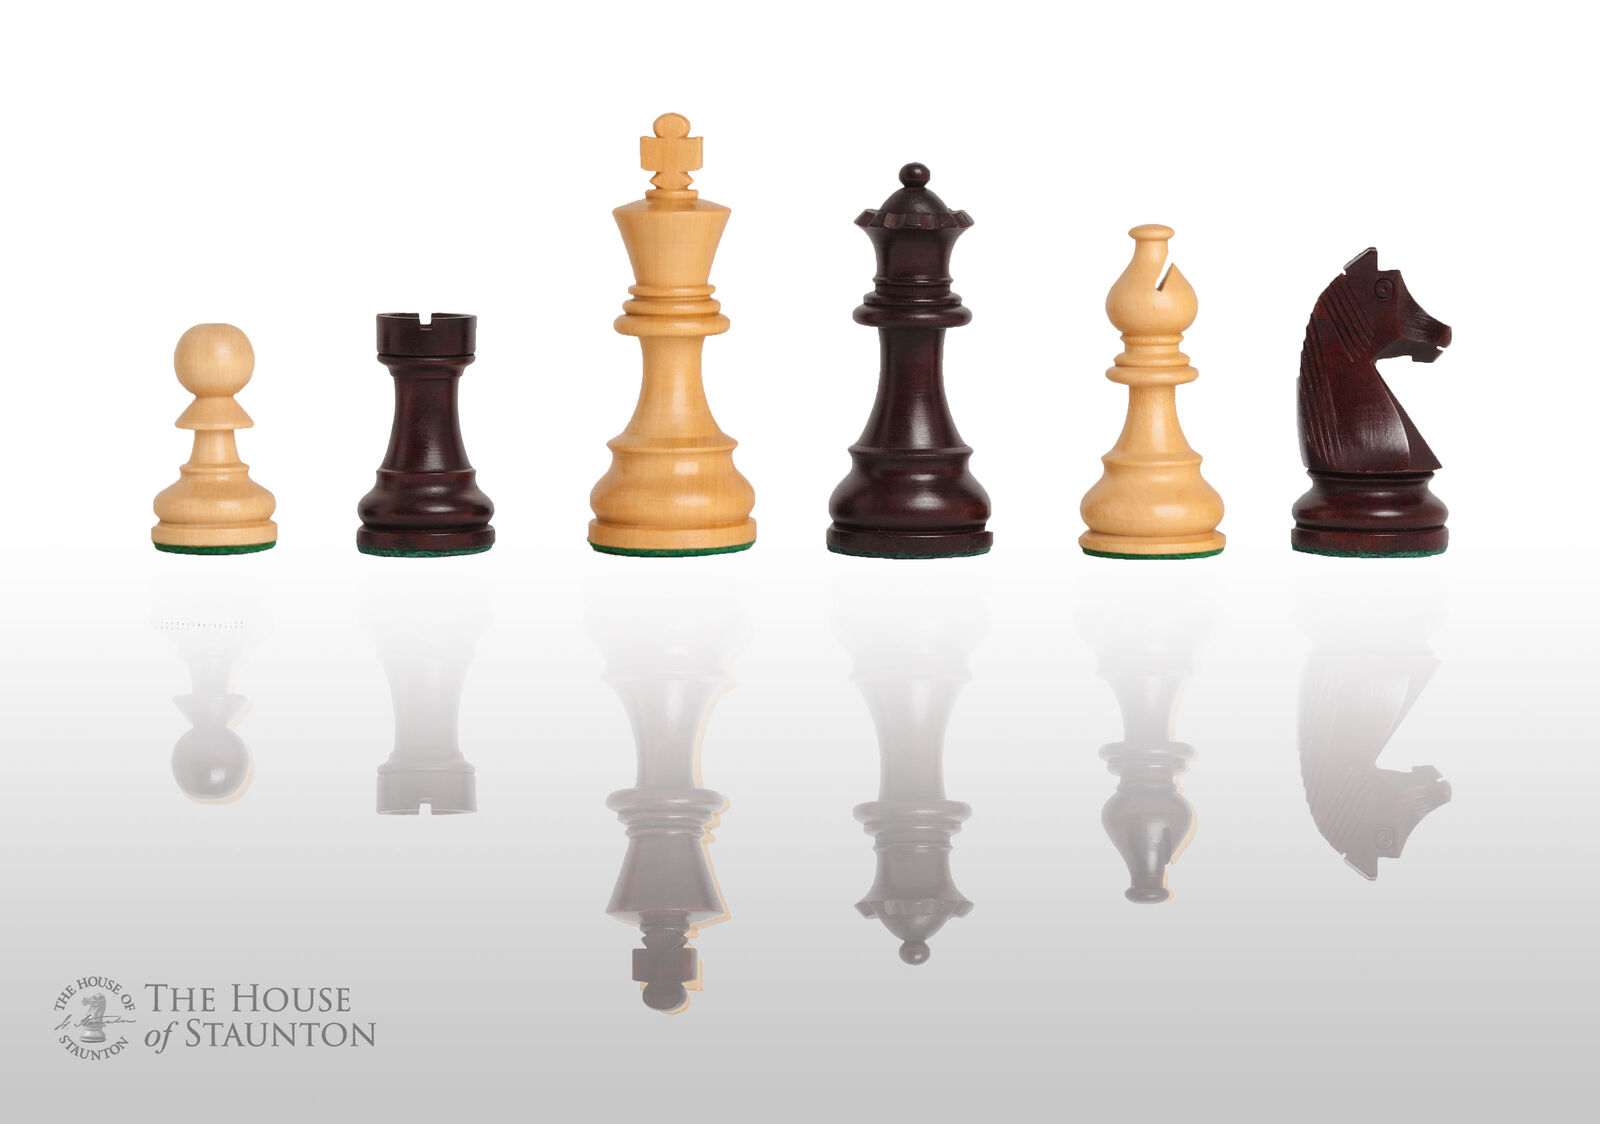 The Championship Chess Set - Pieces Only - 3.75  King - pinkwood Gilded